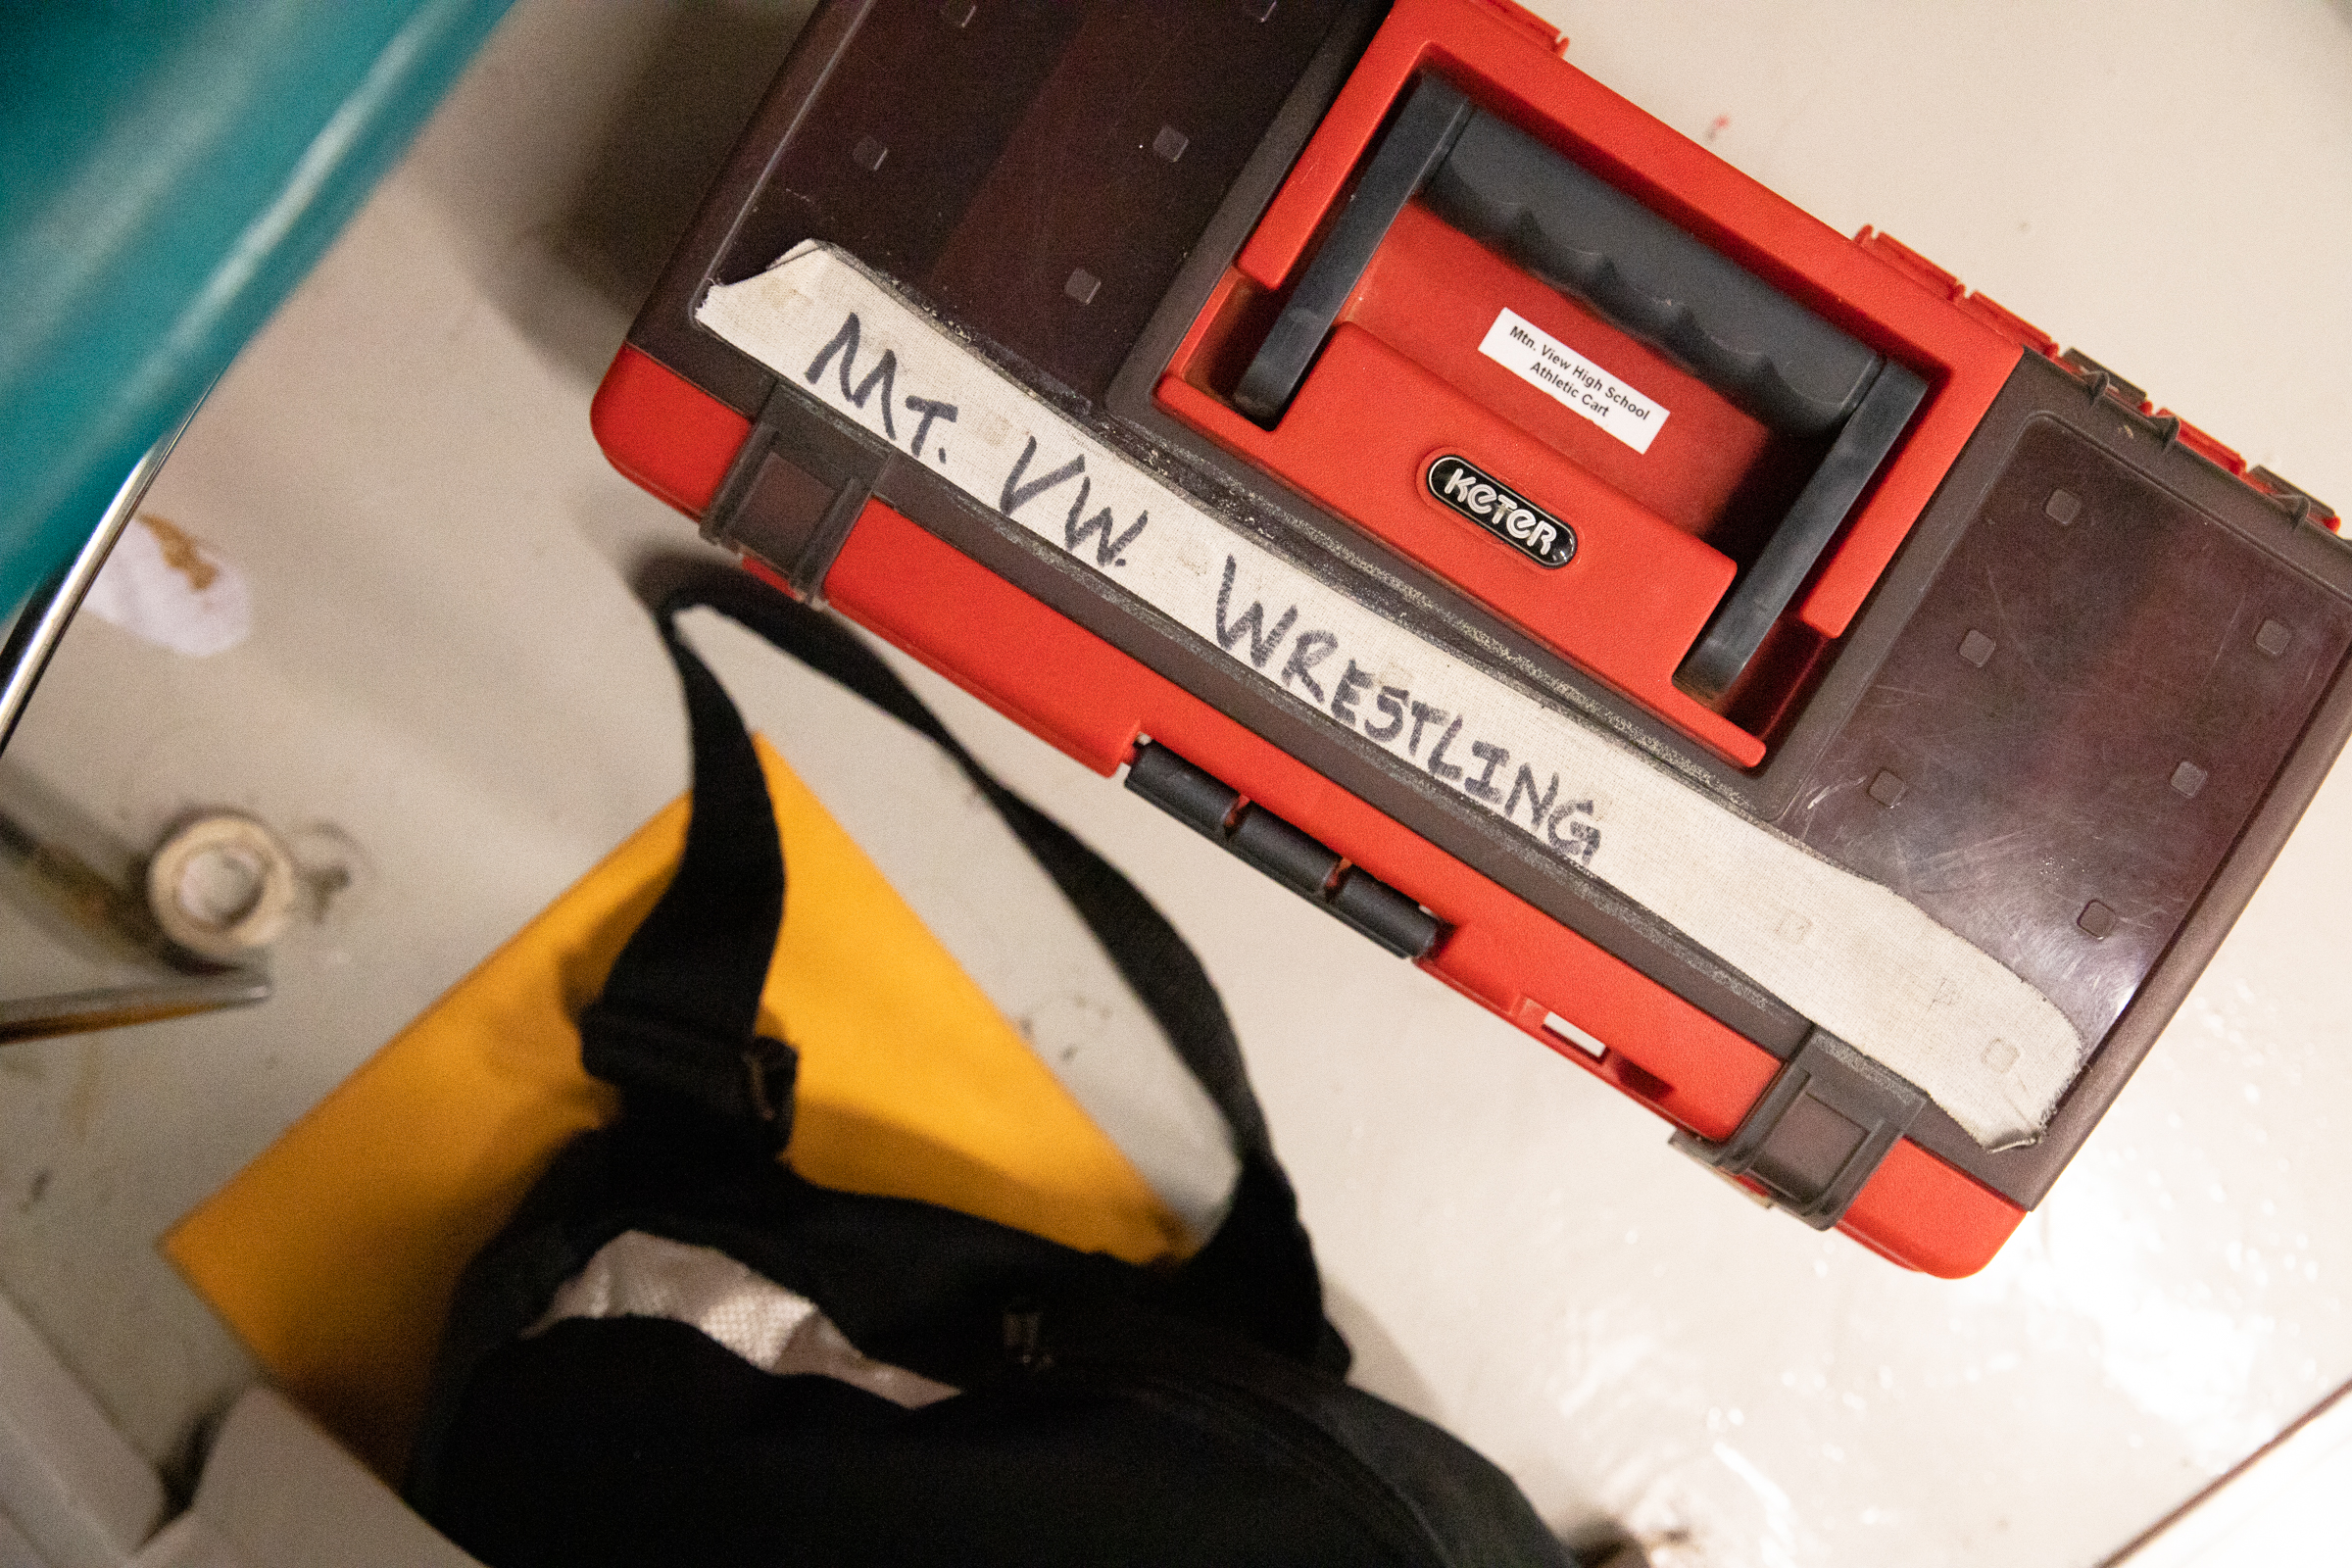 The Mountain View High School wrestling team's medical supplies box at a practice at Los Altos High School in Los Altos, California, on Jan. 30.